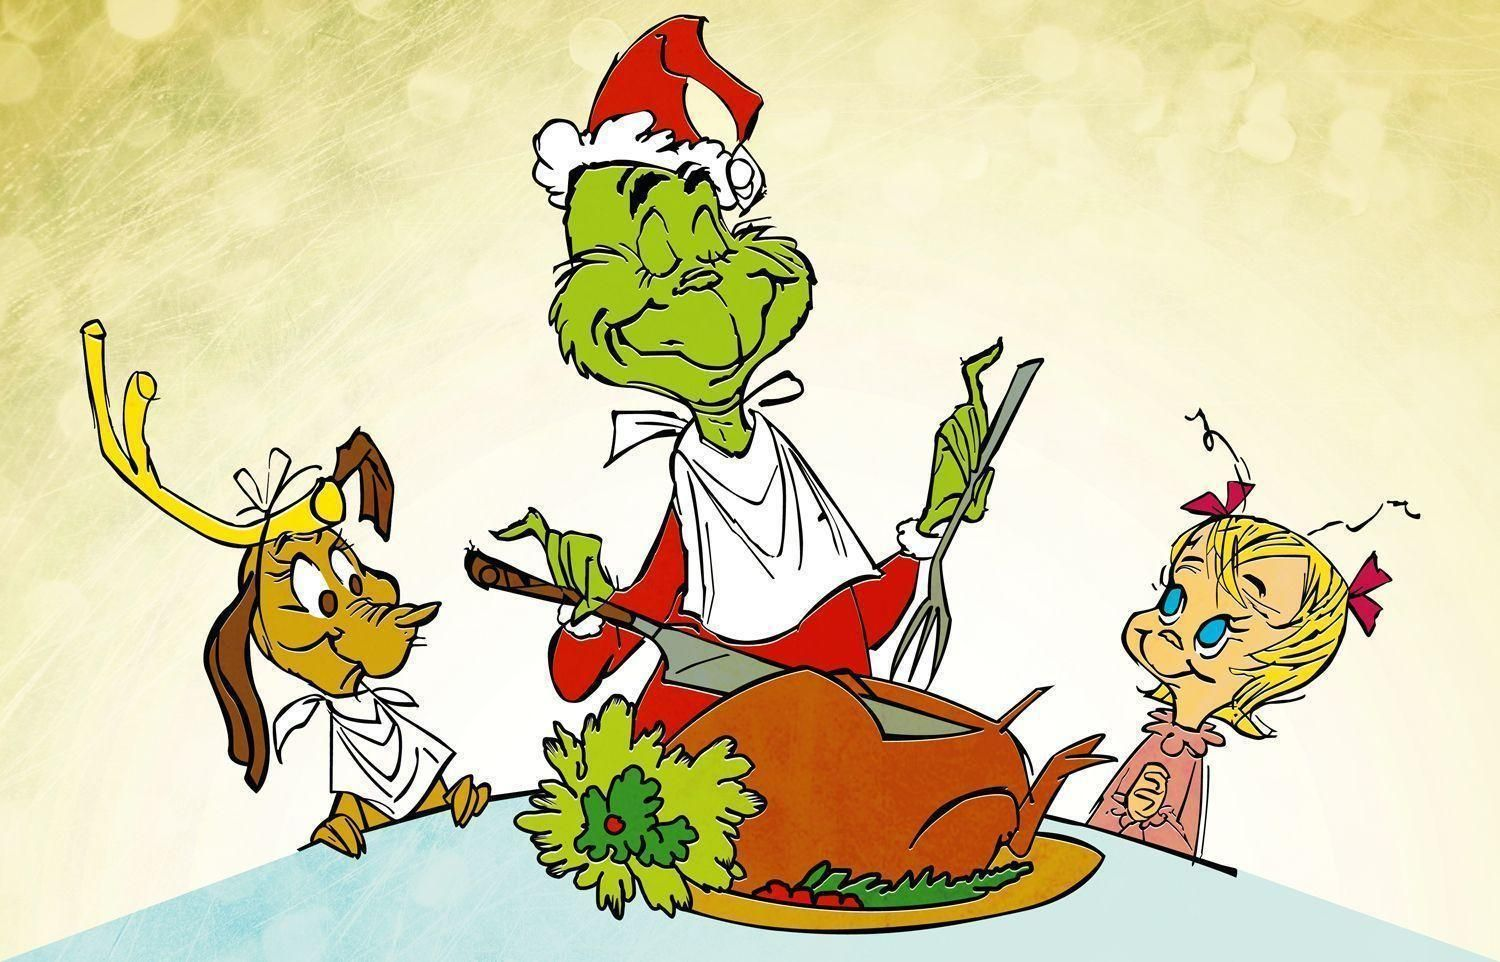 1500x962 The Grinch Wallpapers Wallpaper Cave Grinch Christmas Grinch Who Stole Christmas Grinch Stole Christmas